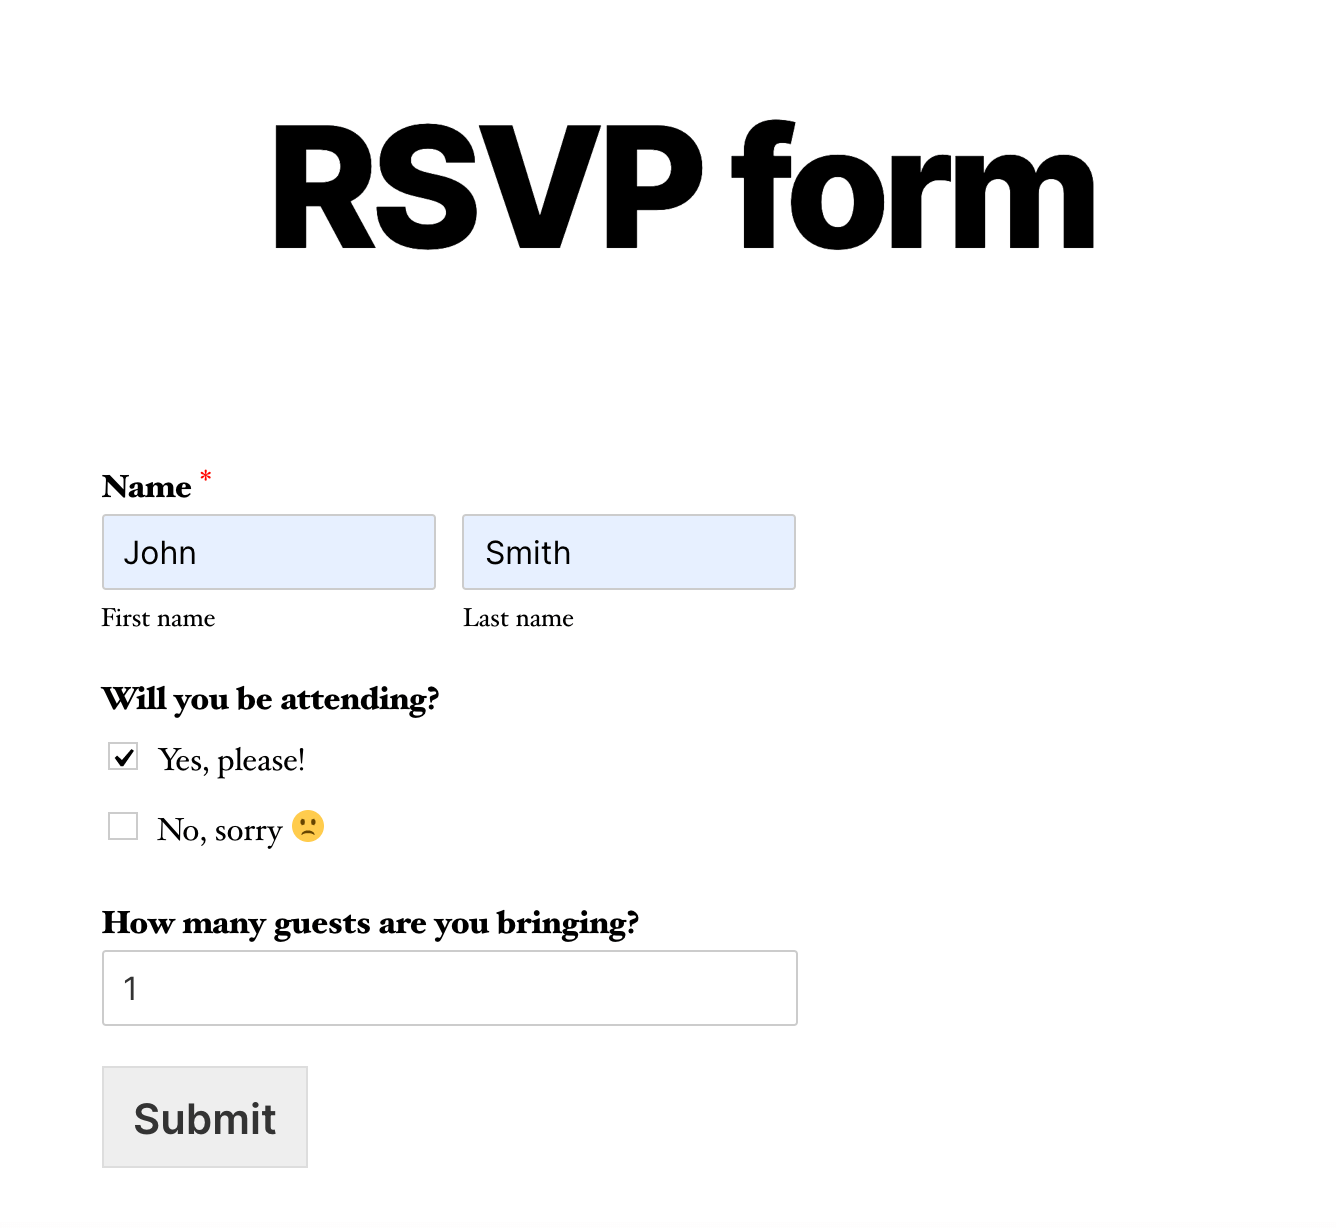 Sample RSVP form embedded in WordPress using WPForms plugin